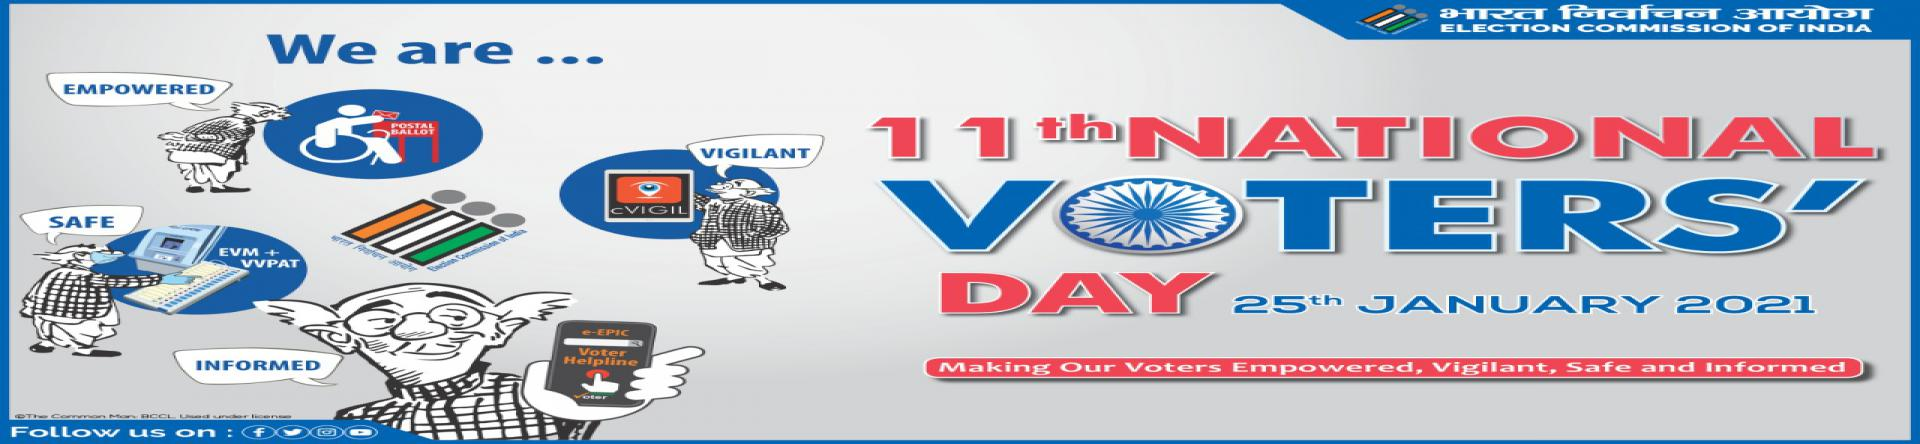 National Voters' Day - 2021